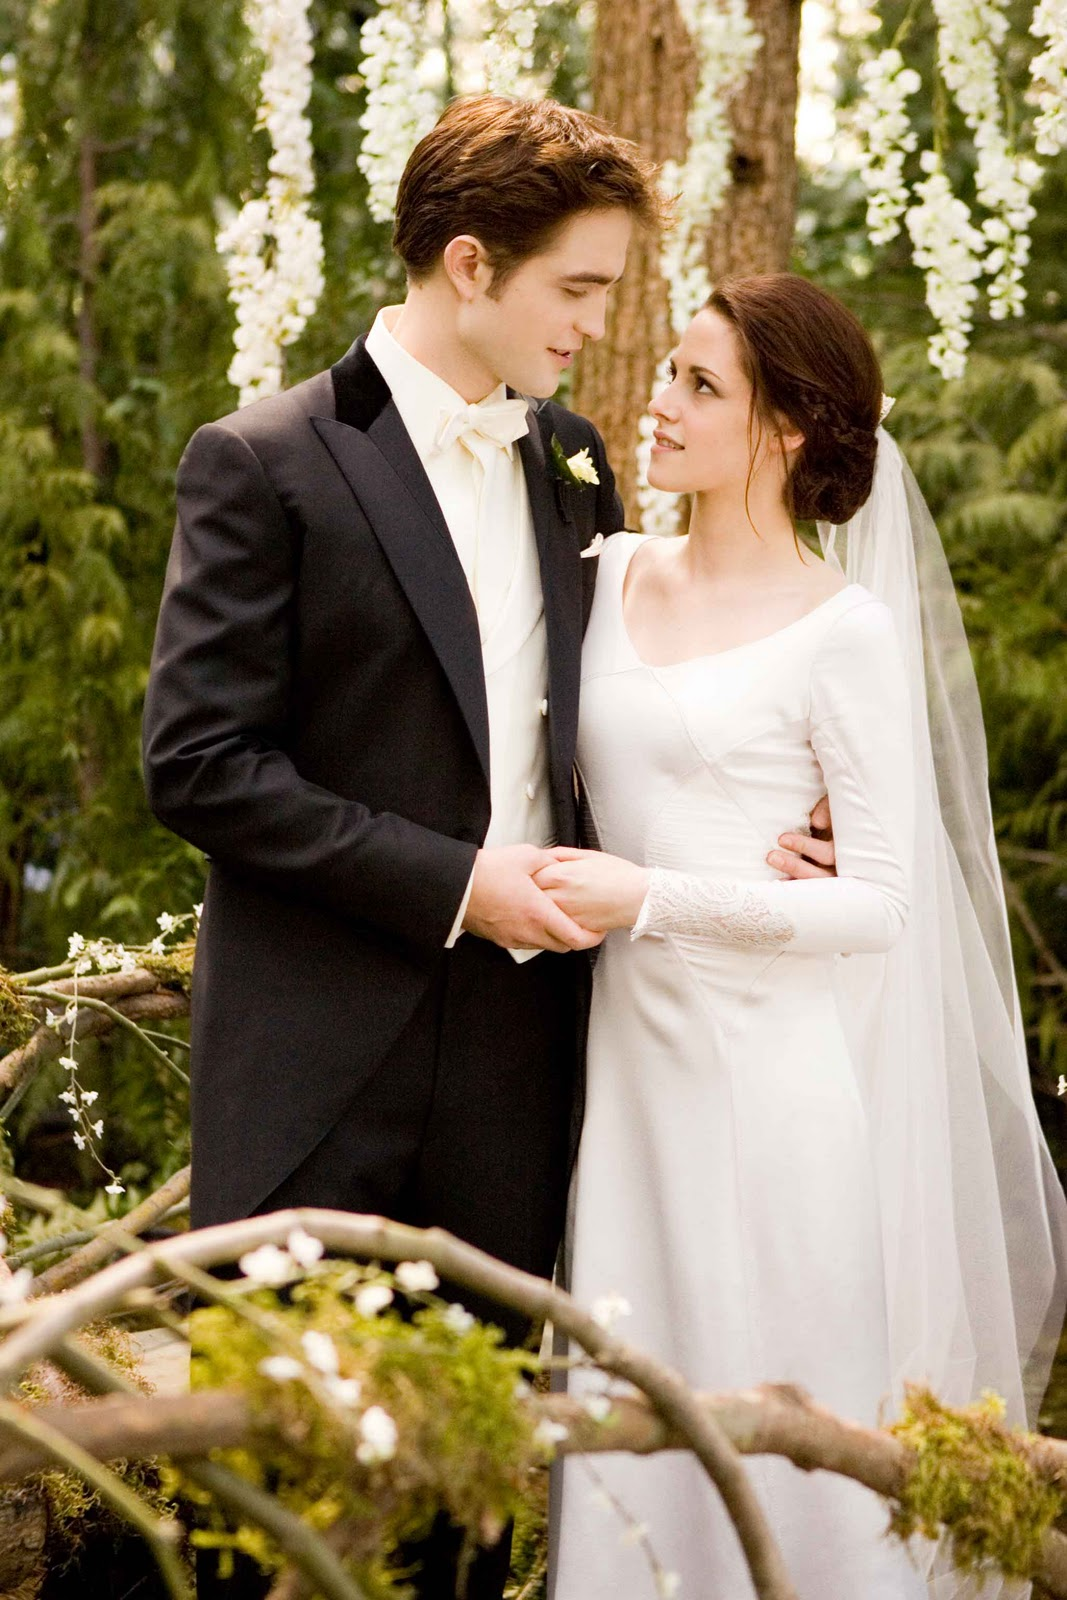 Stills Breaking Dawn 1 (Amanecer)